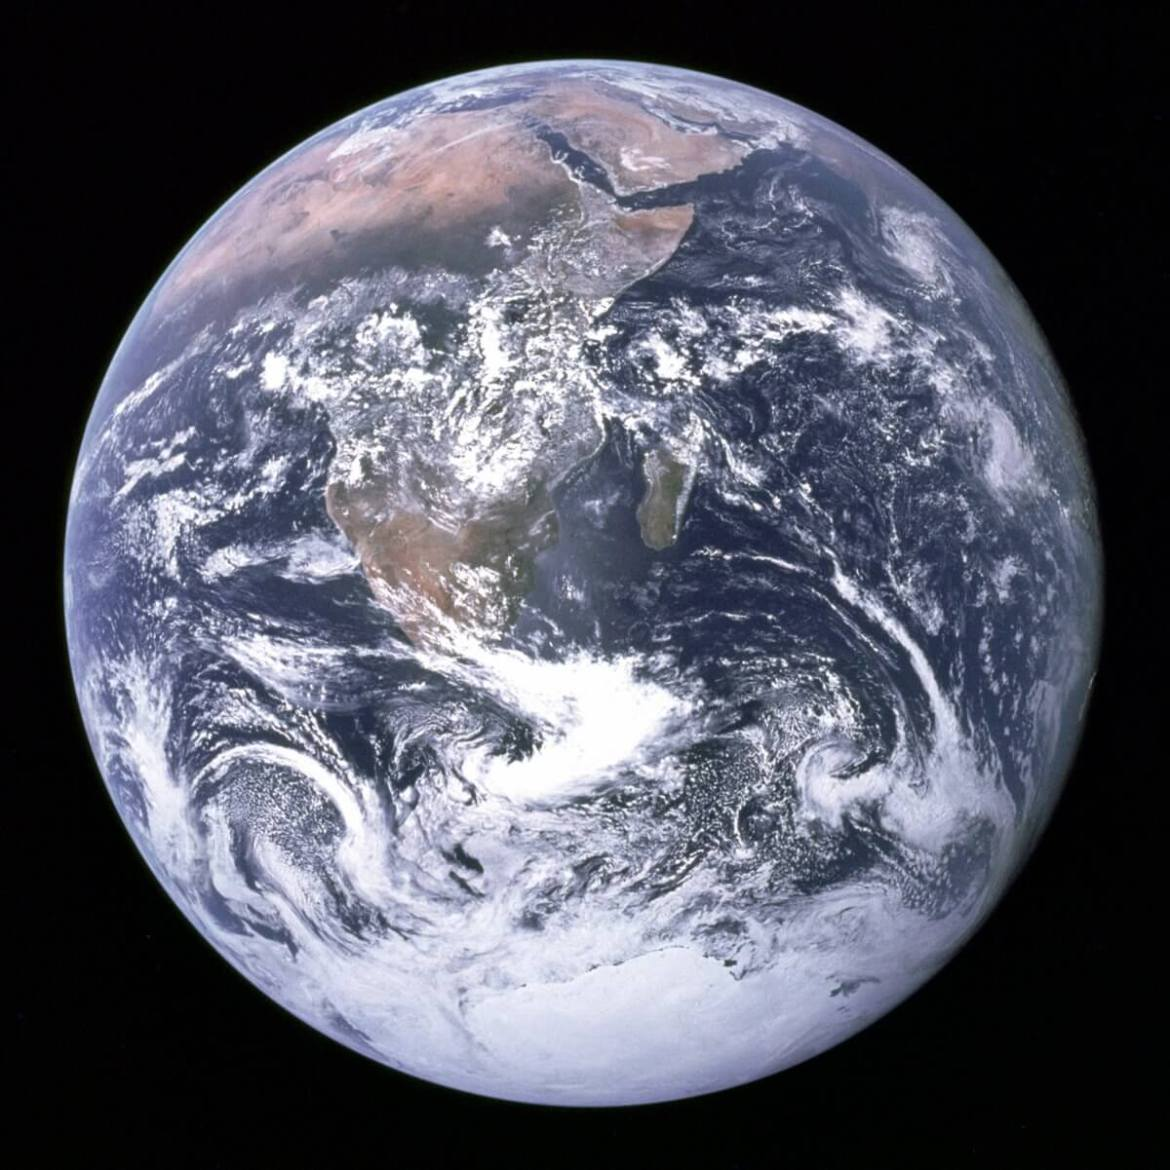 Our planet appears as a brilliant blue marble wrapped in a thin, nearly invisible veil of gas.